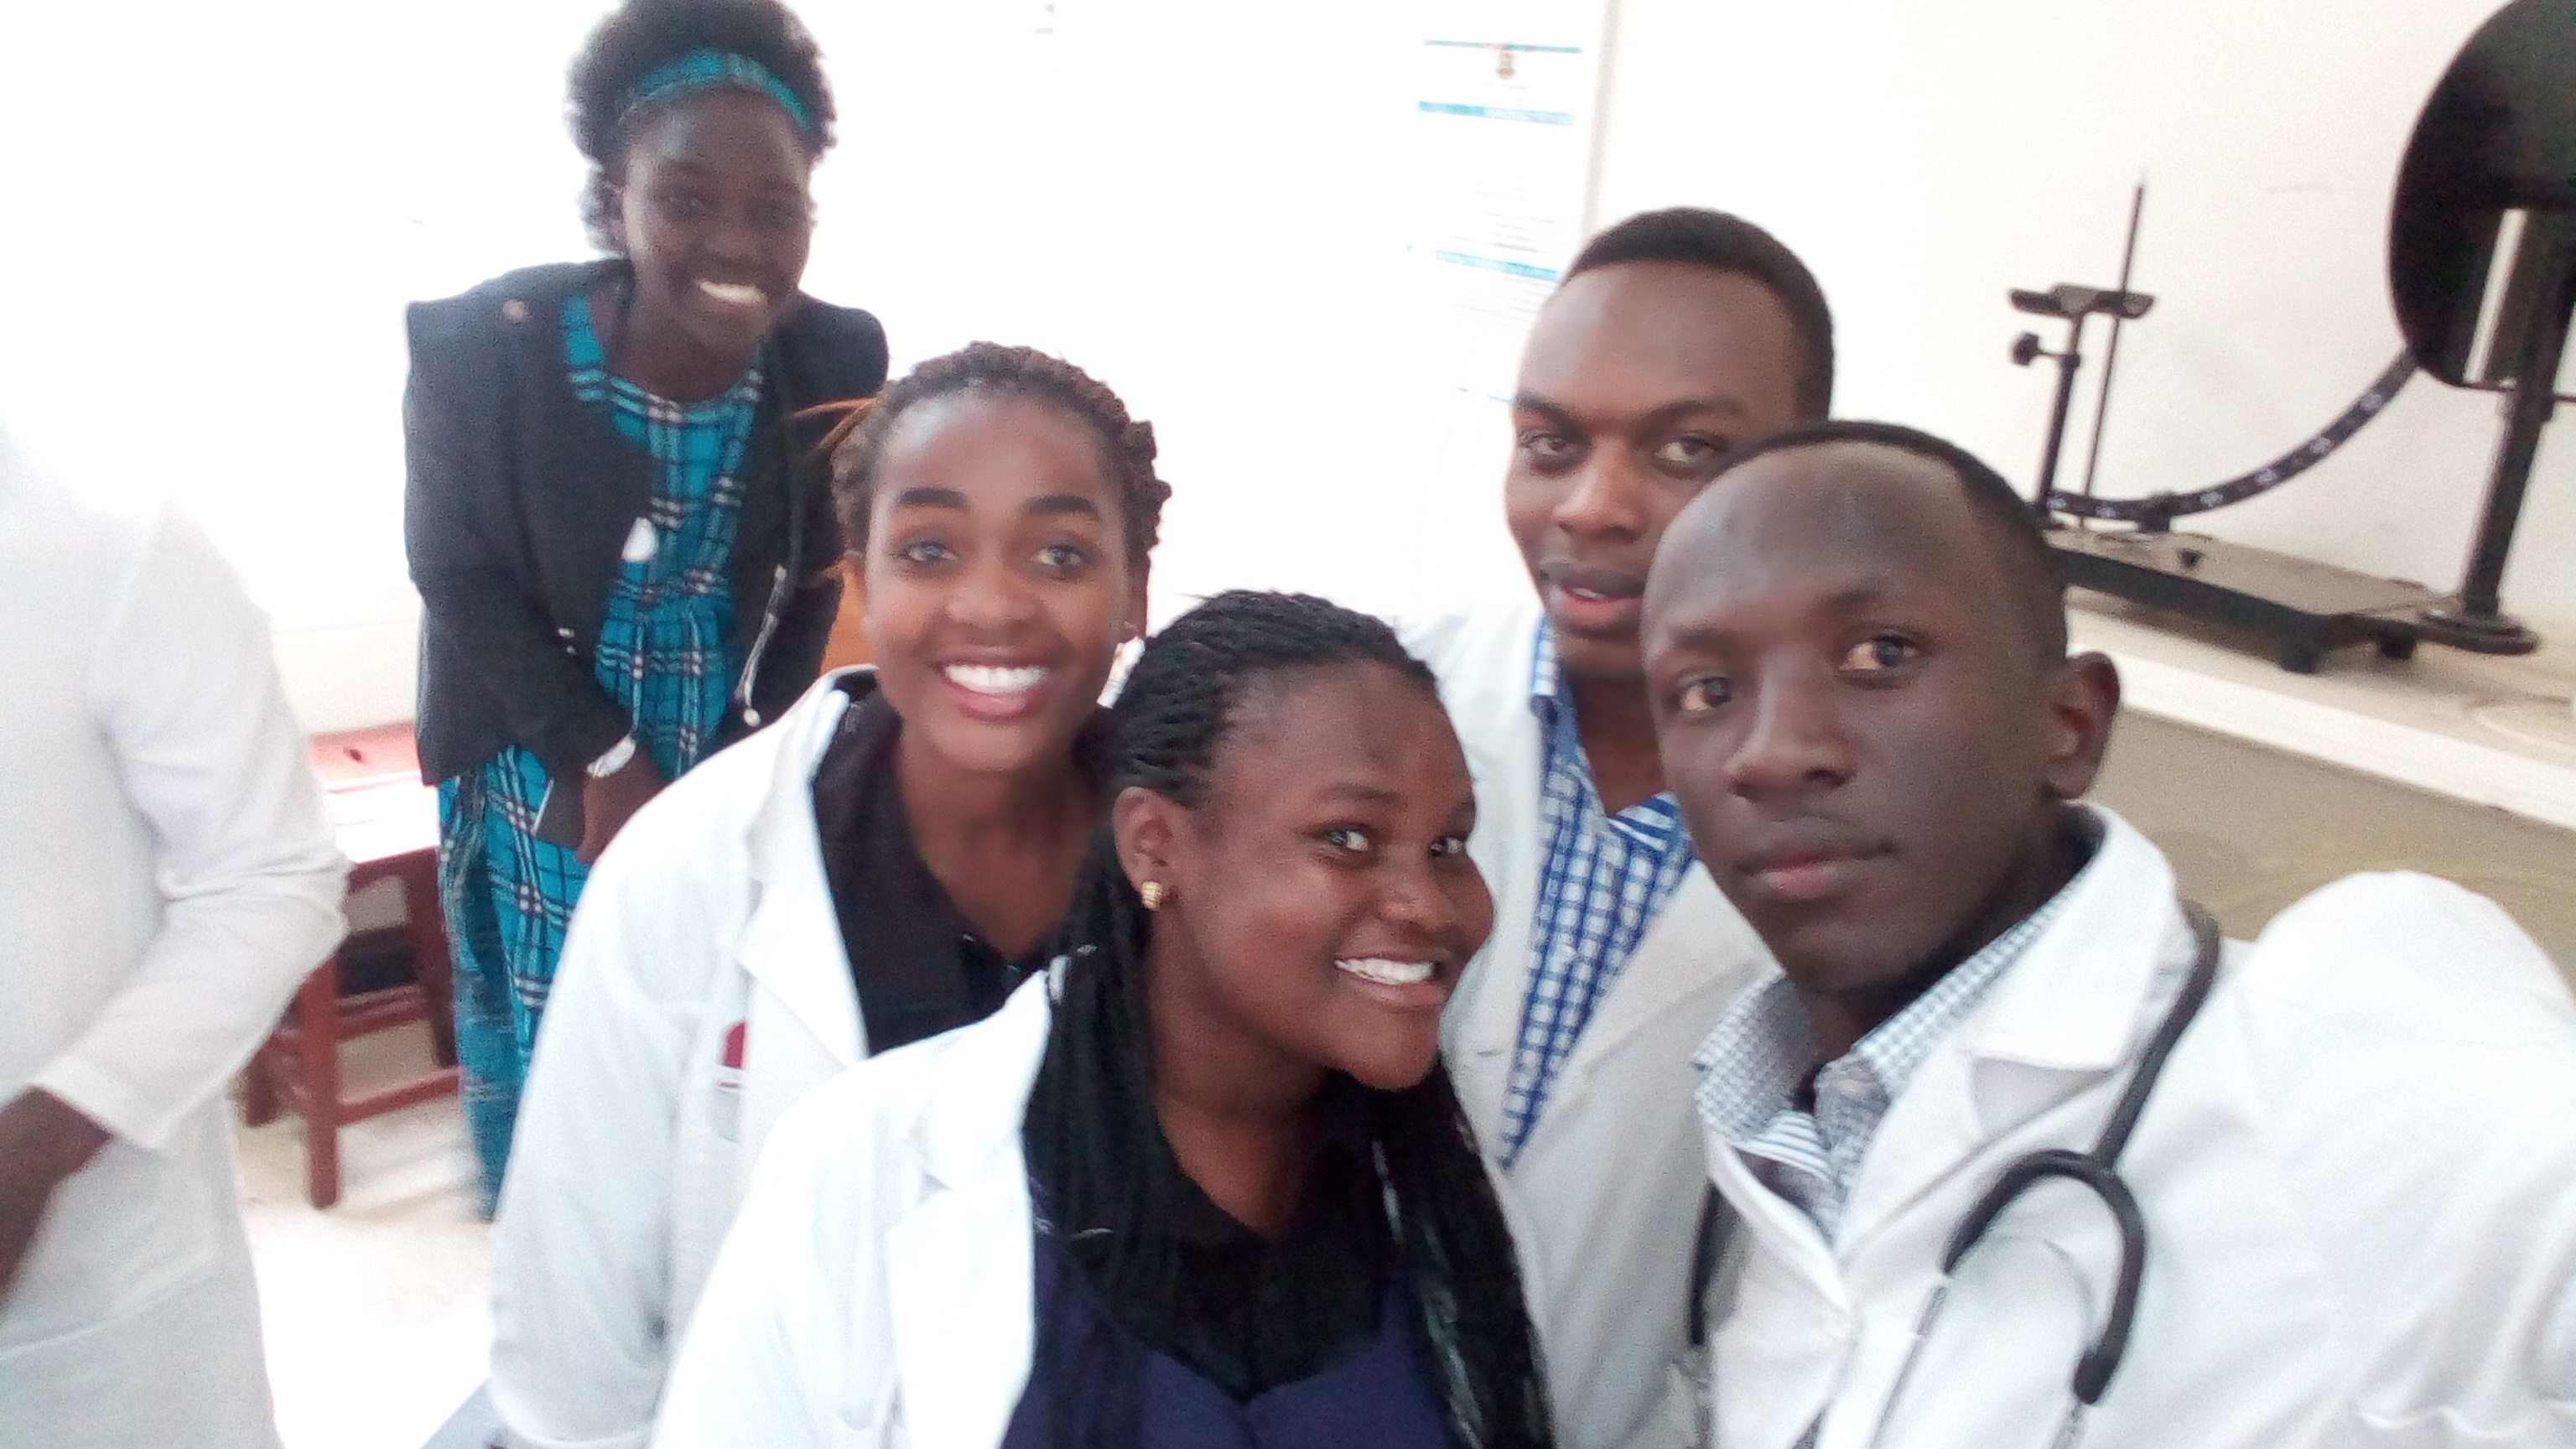 Medicine and Surgery lv2 during lab session. Below is Andrew,Amros,Audi,Eve and Faith